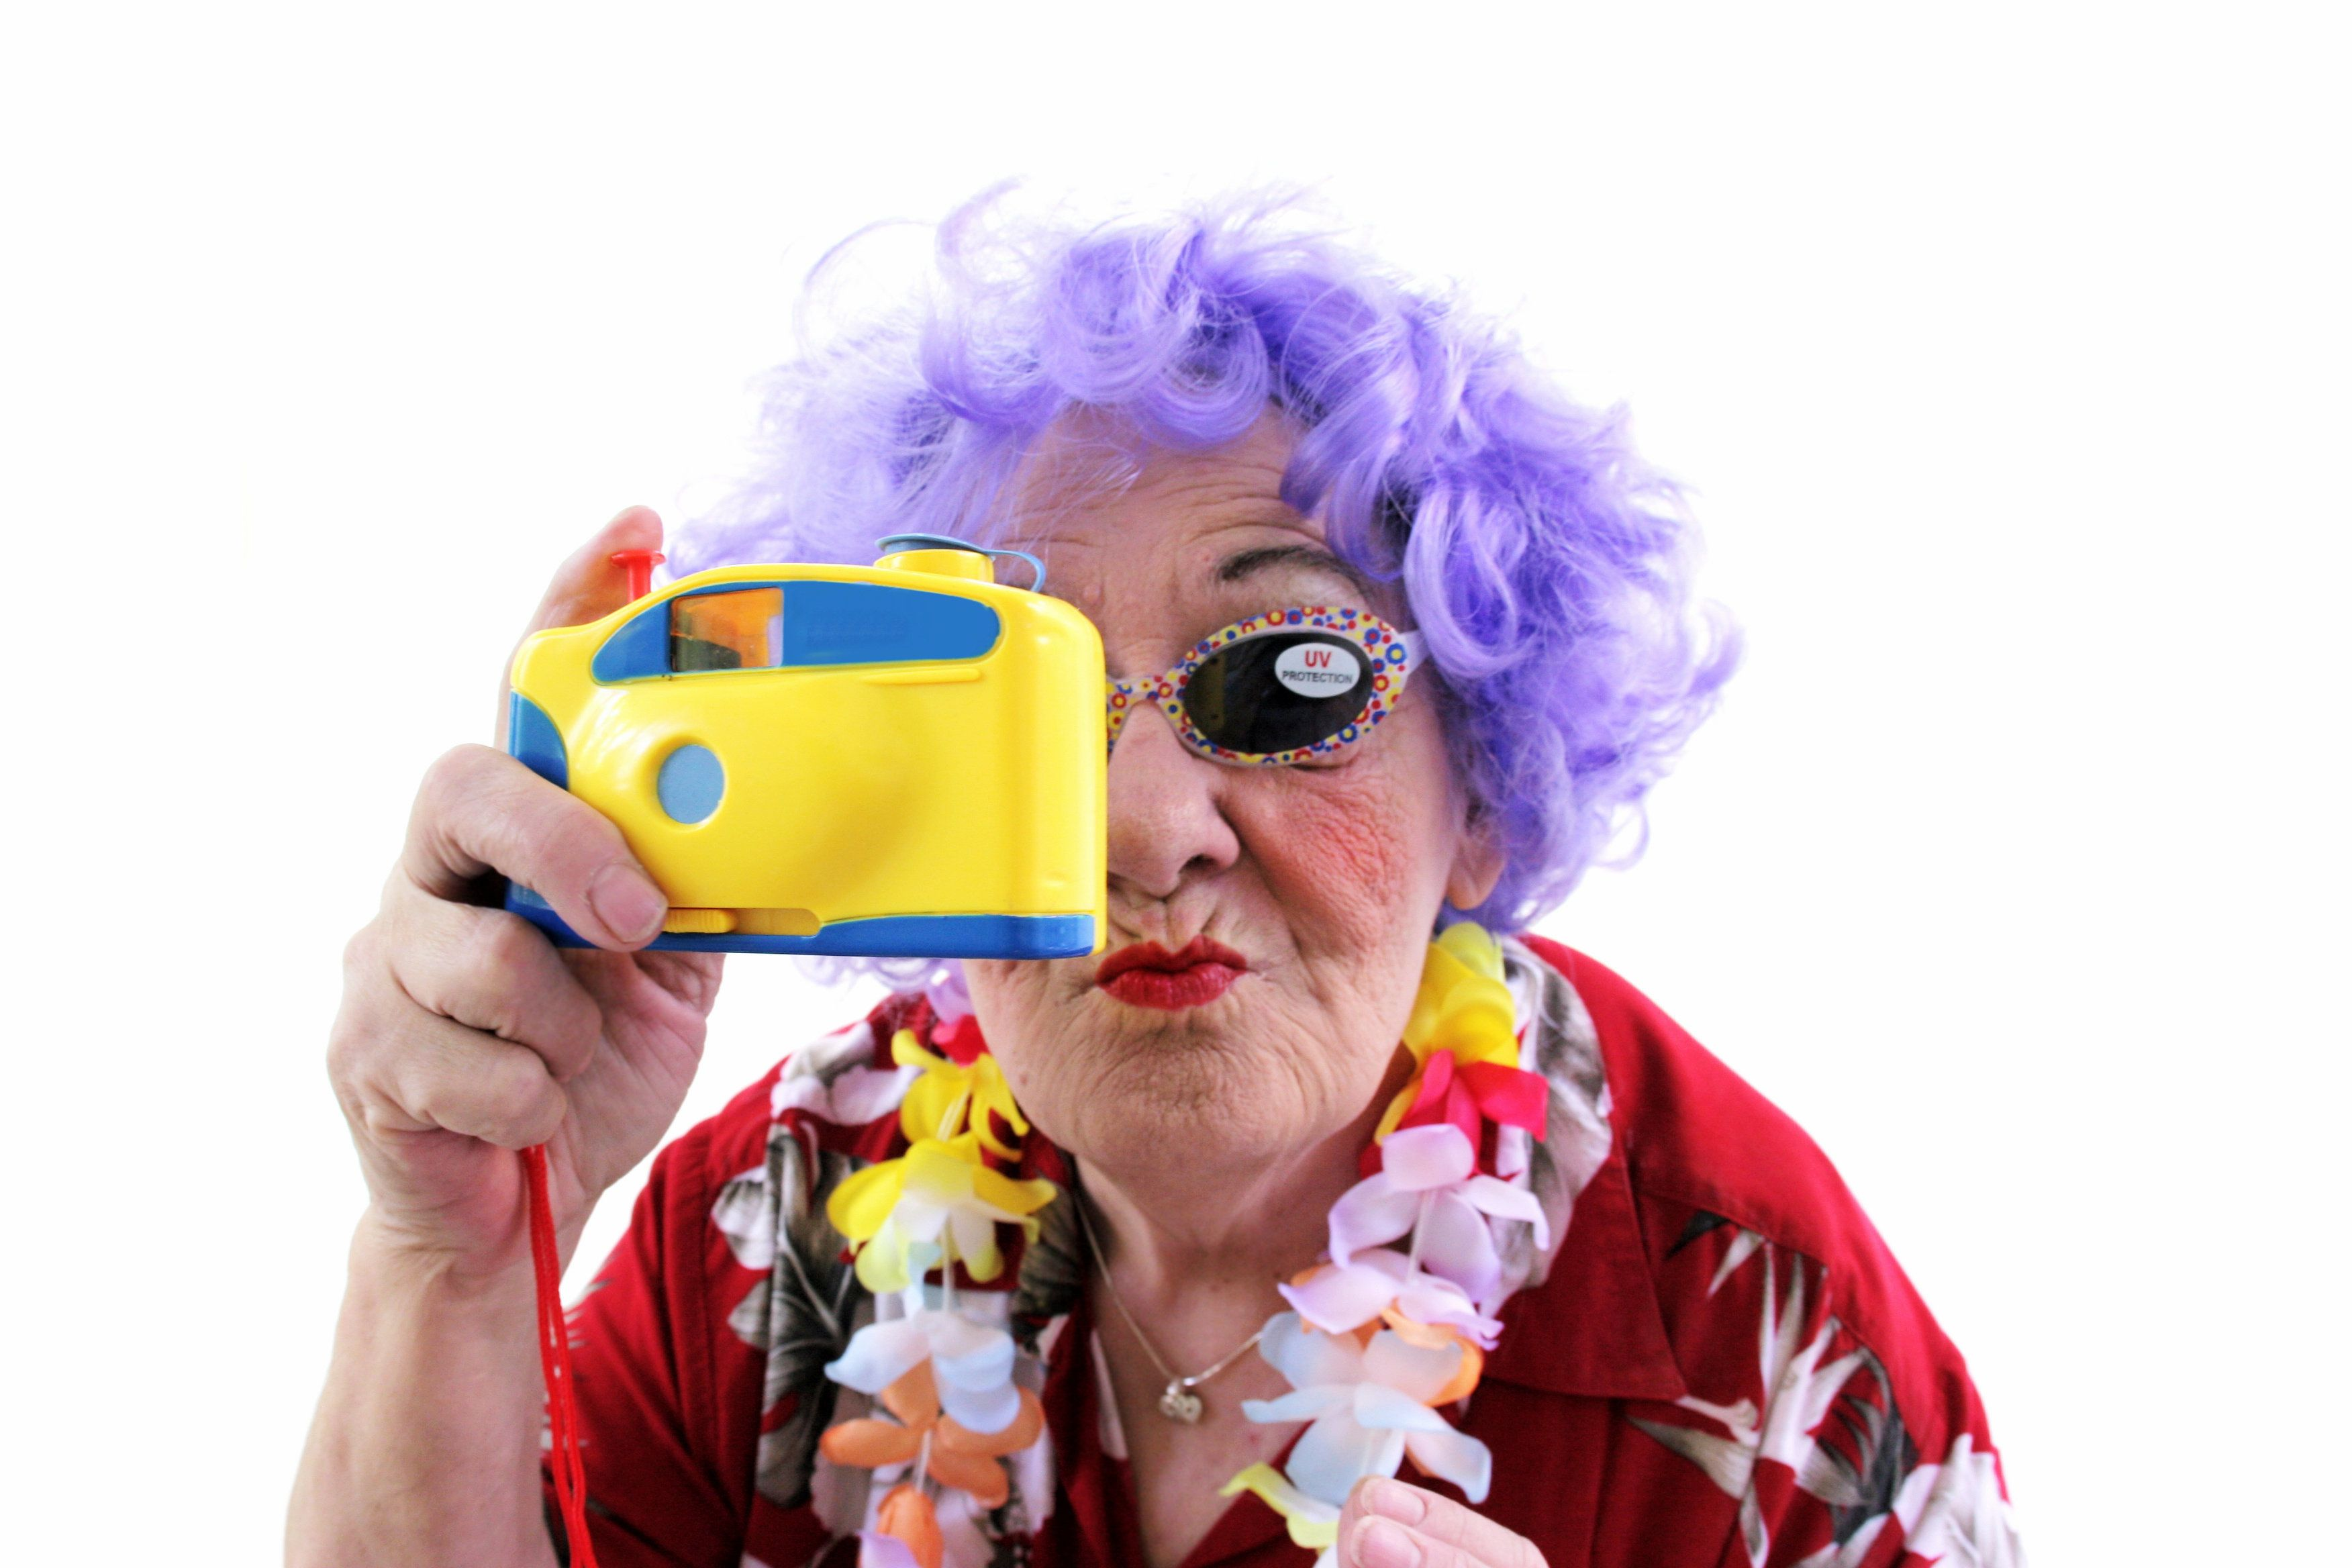 """""""Purple-haired crazy granny"""" isa stereotype that mocks and infantilizes older women."""